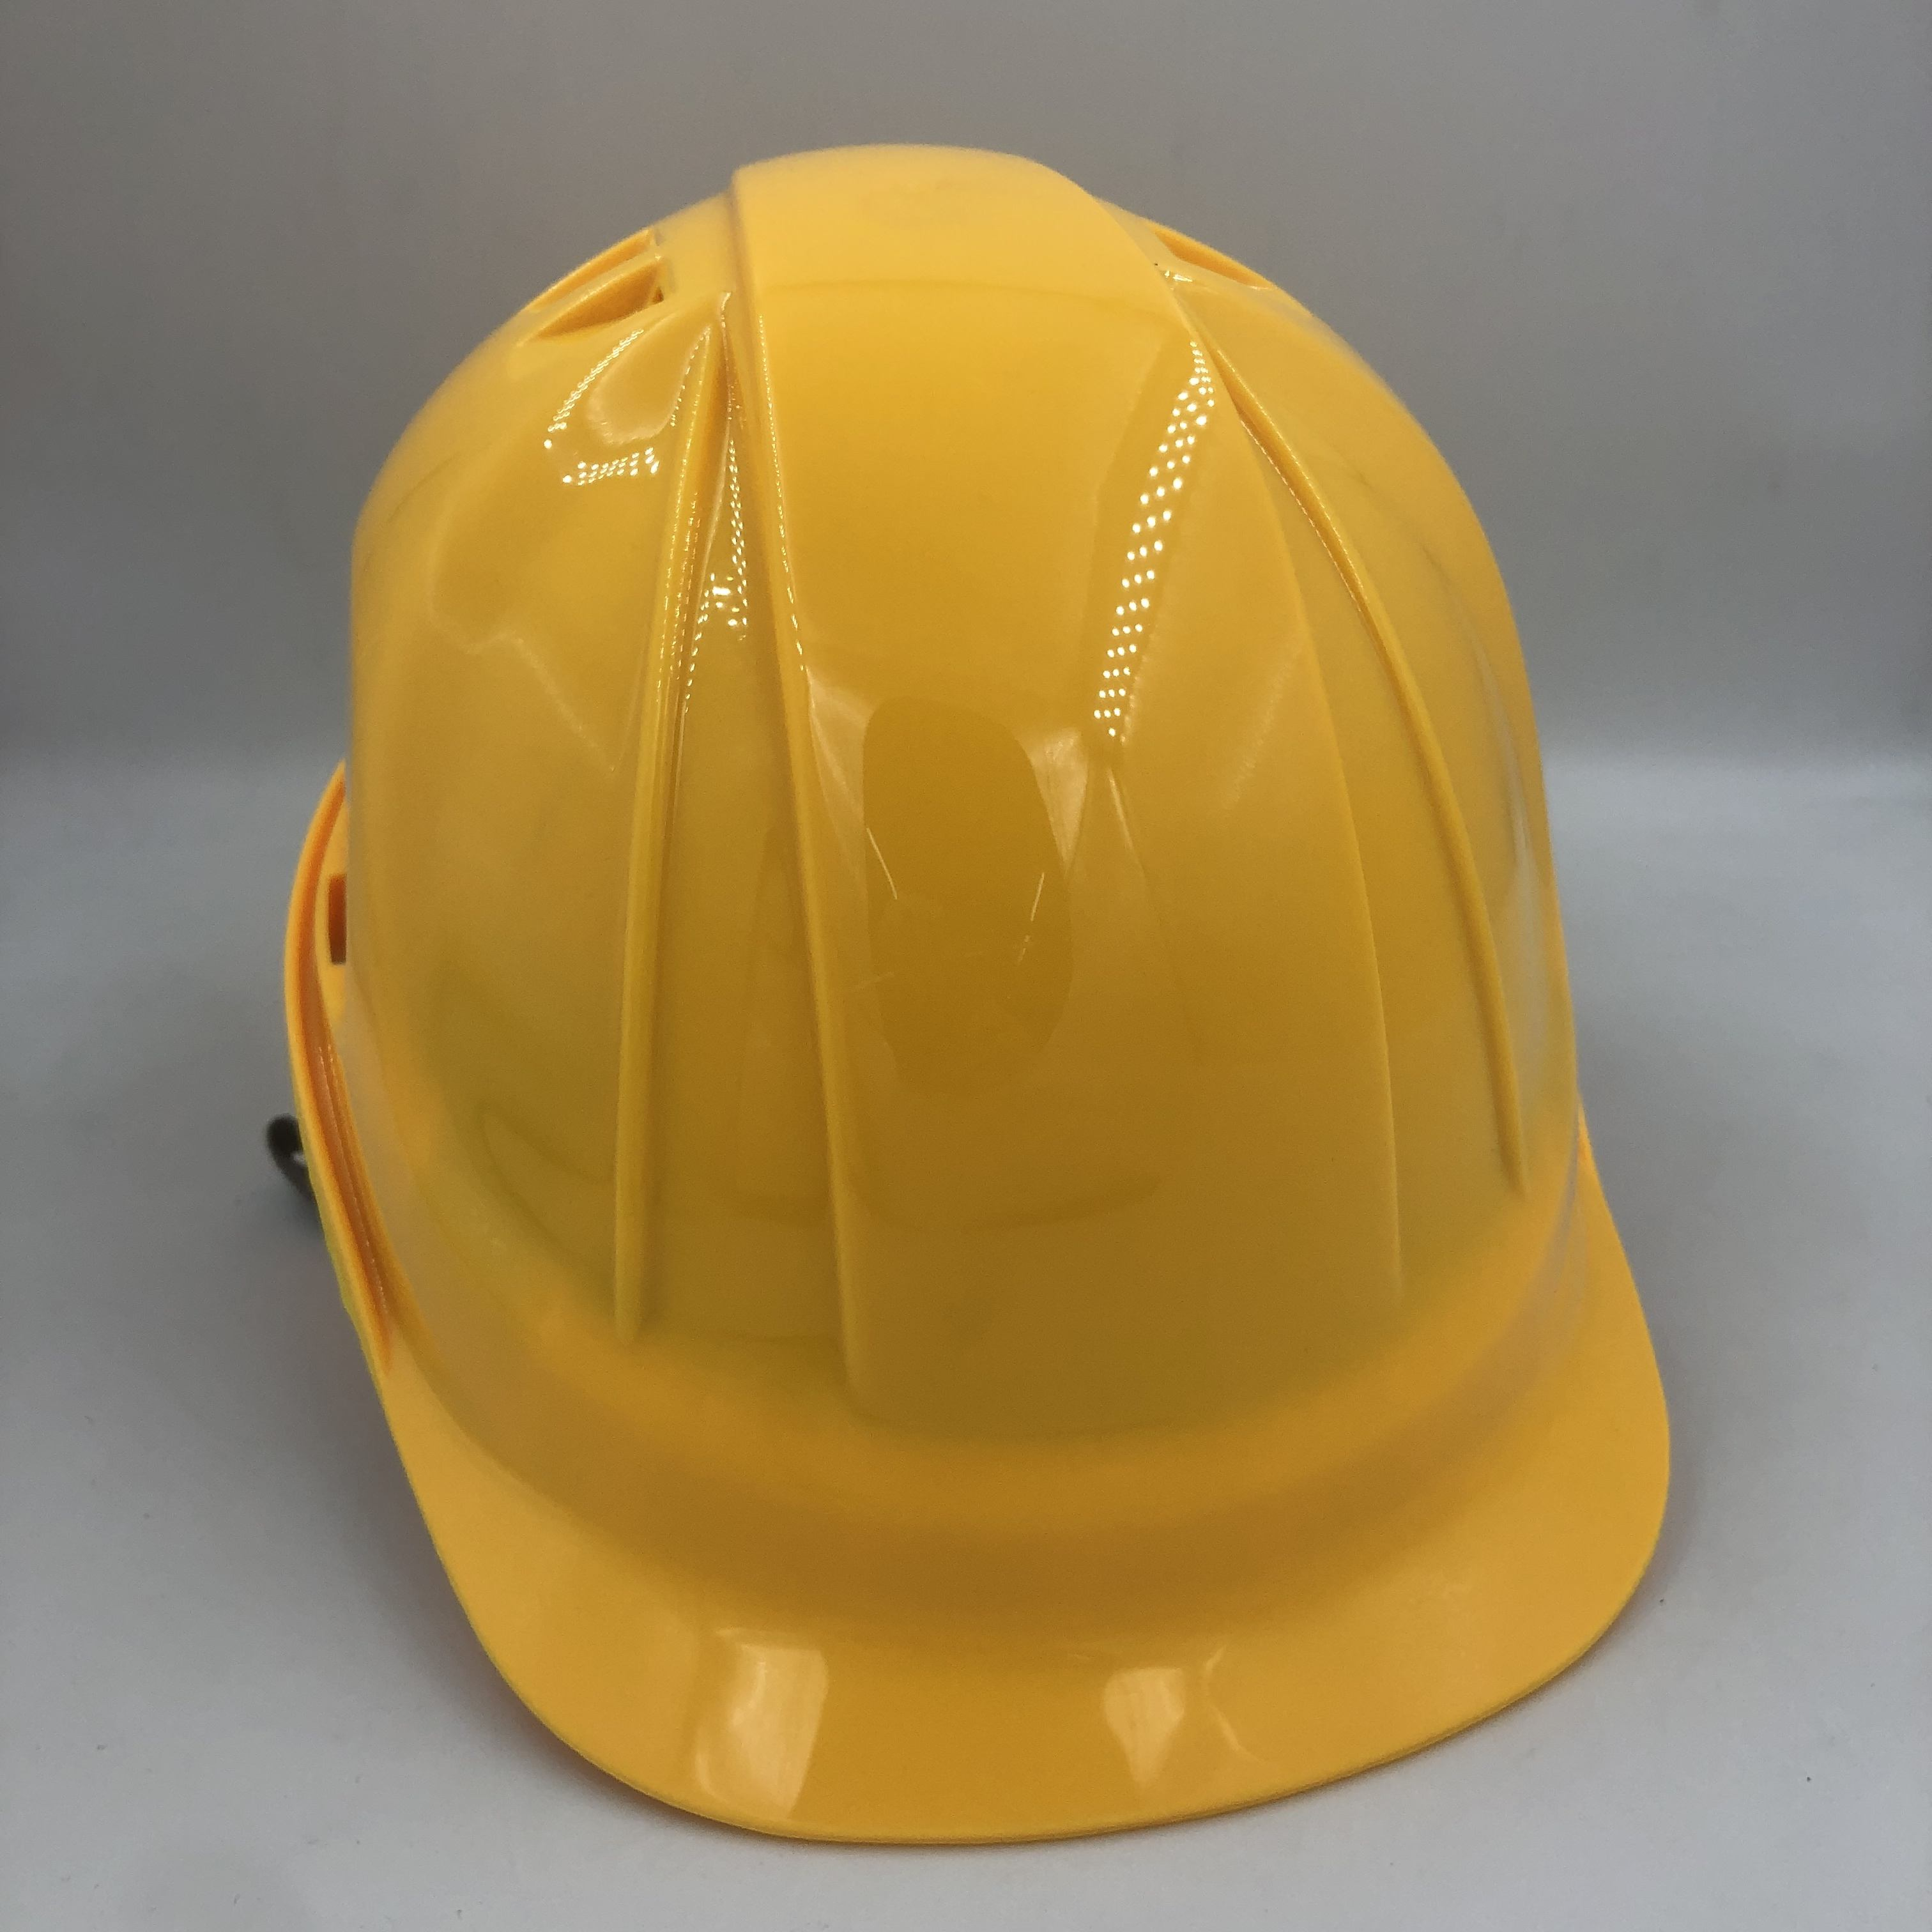 WEIWU brand new style CE certificate ABS material industrial hard hat 598 pin lock safety helmet construction